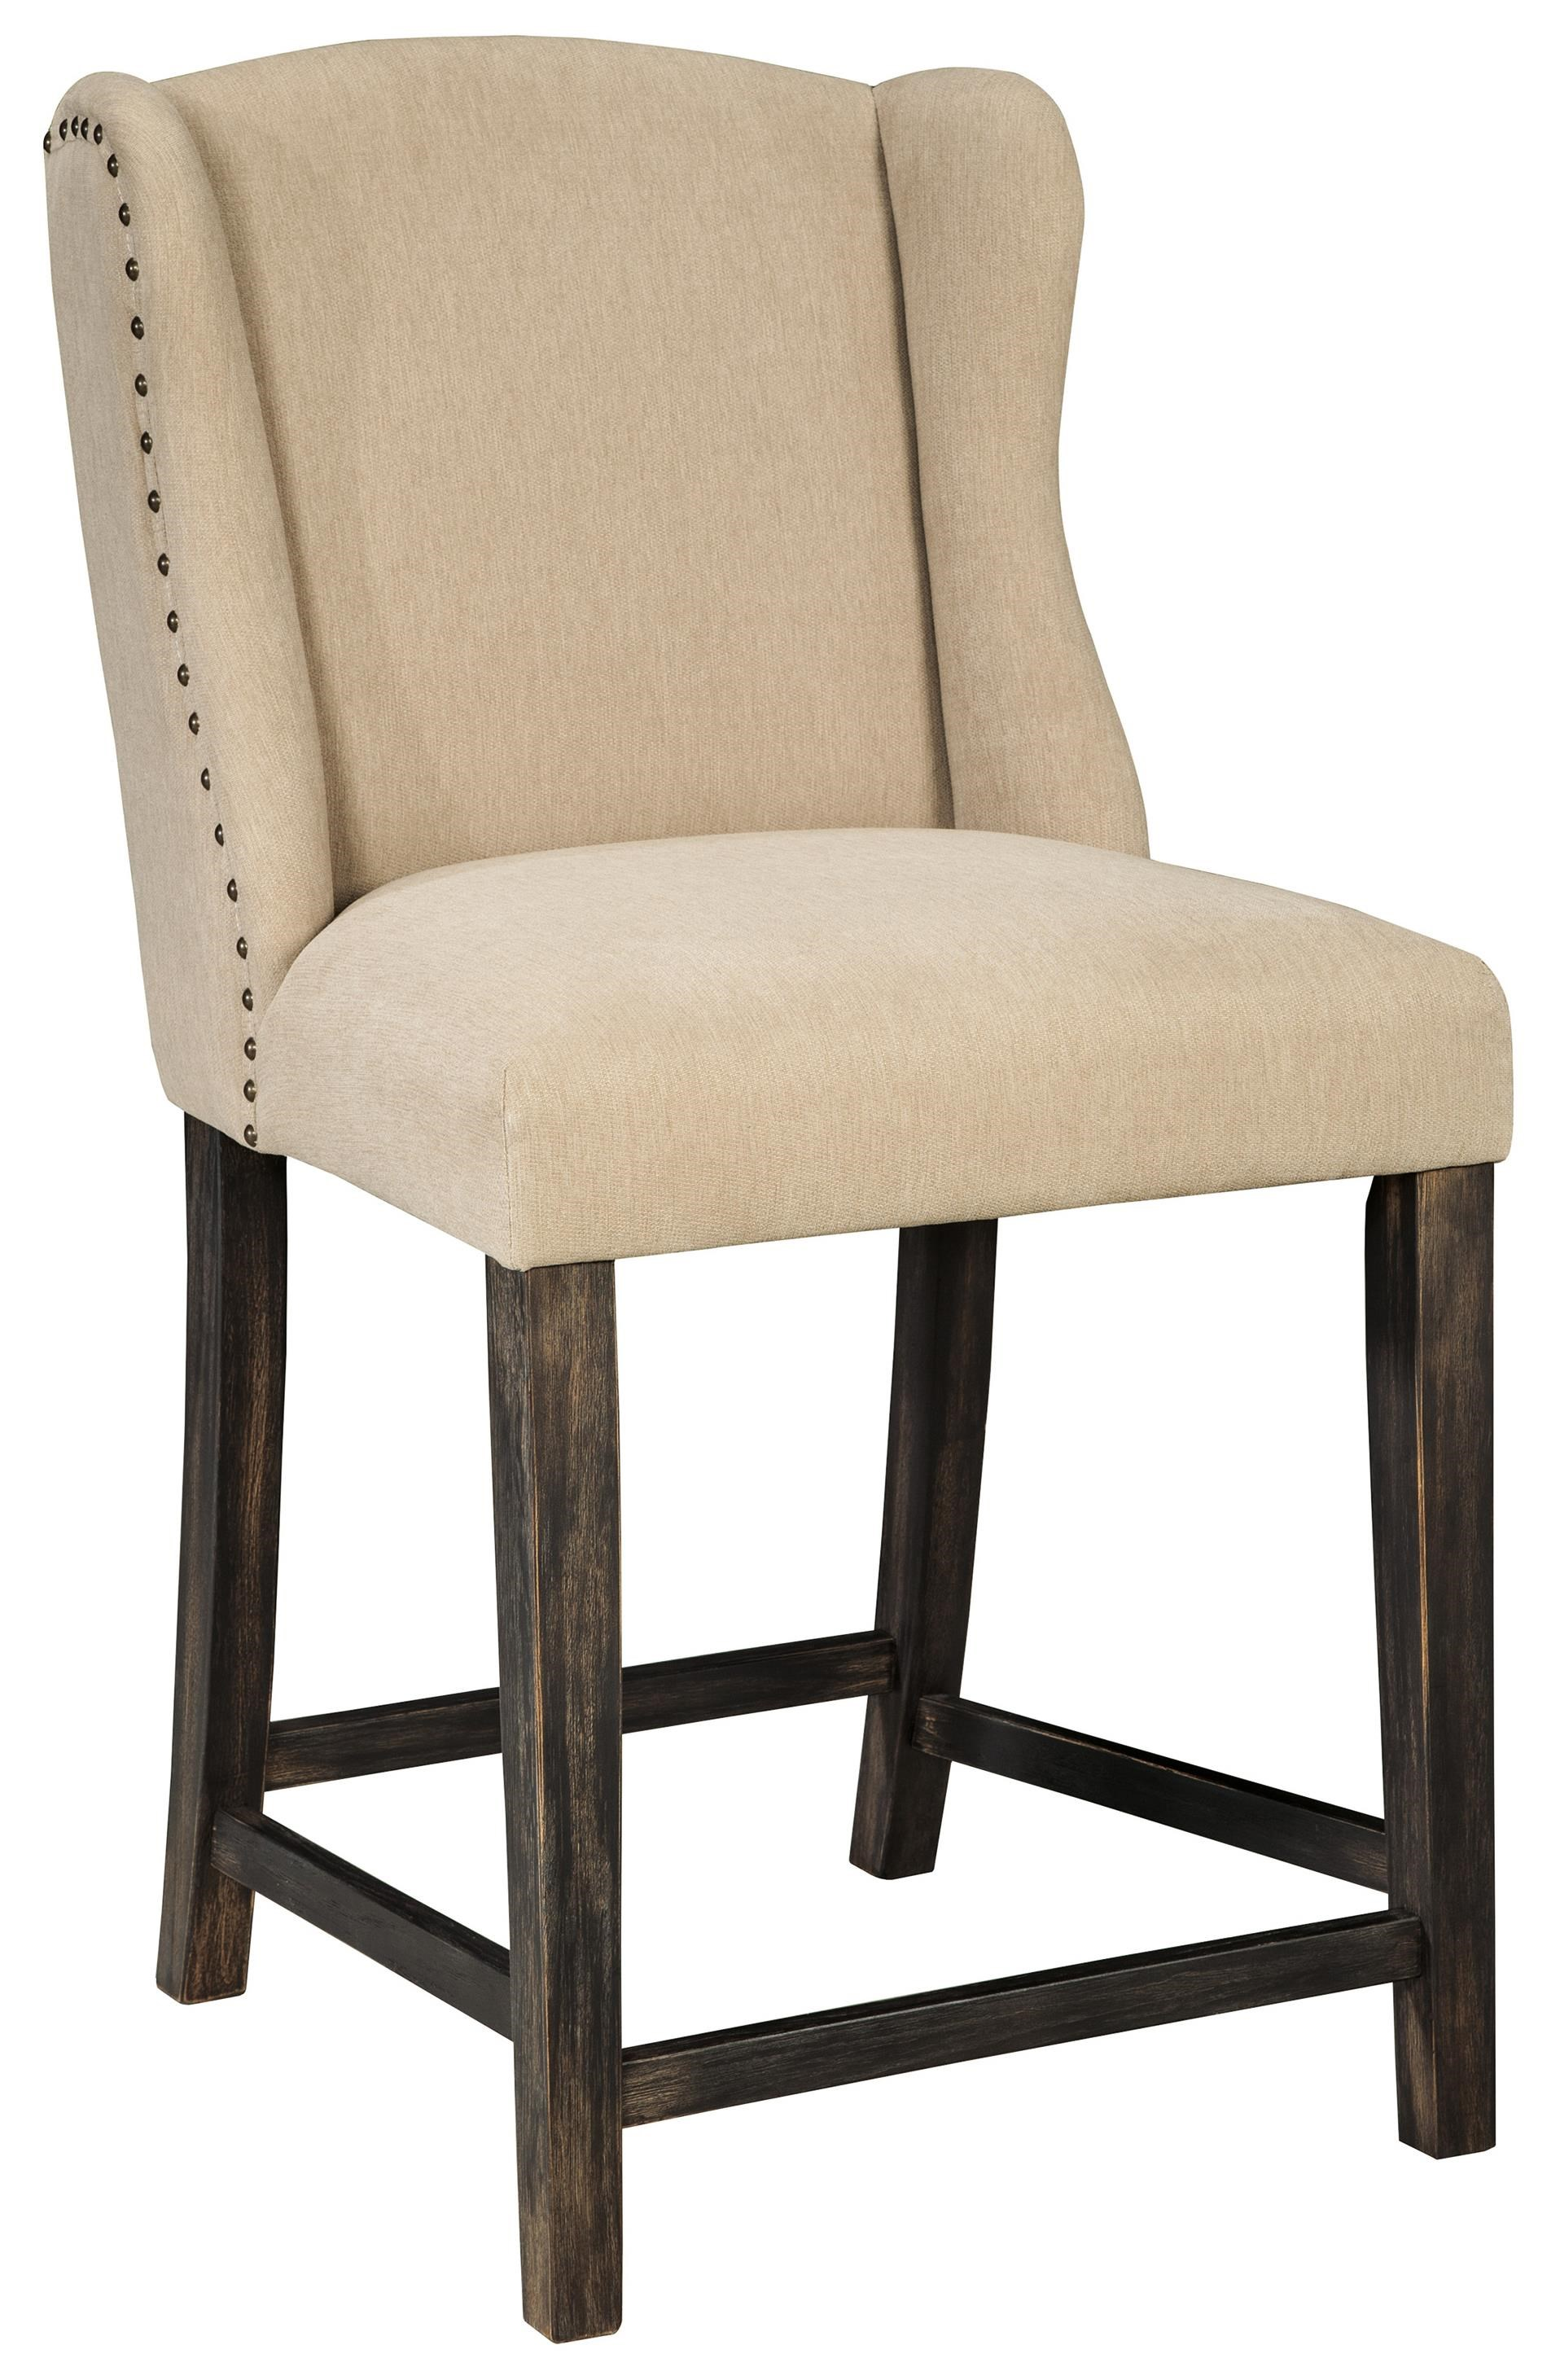 Signature Design by Ashley Moriann Upholstered Barstool  : moriannd608 524 b0jpgscalebothampwidth500ampheight500ampfsharpen25ampdown from www.olindes.com size 500 x 500 jpeg 27kB